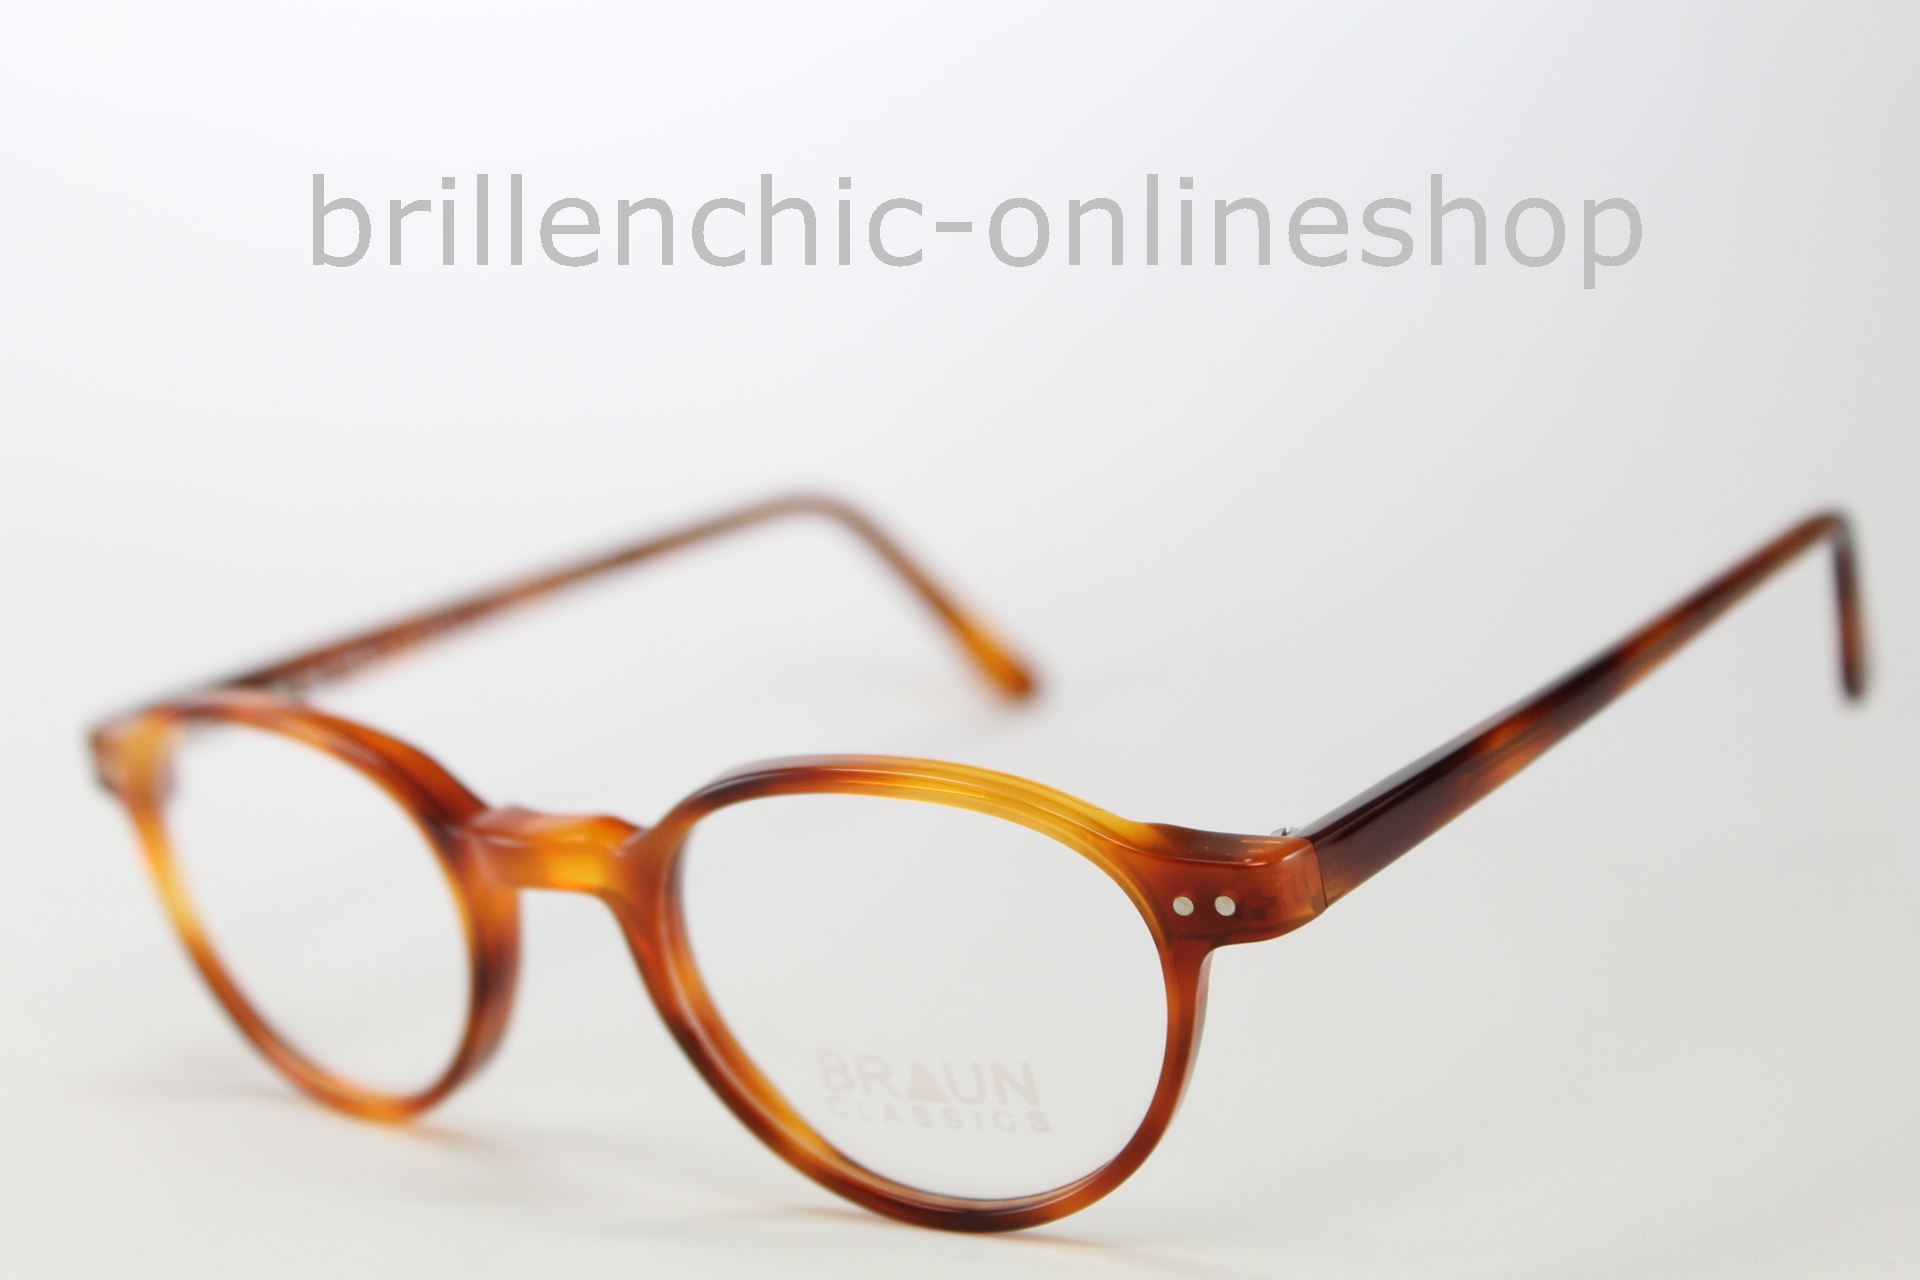 Brillenchic Onlineshop In Berlin Braun Classics Mod 77 3